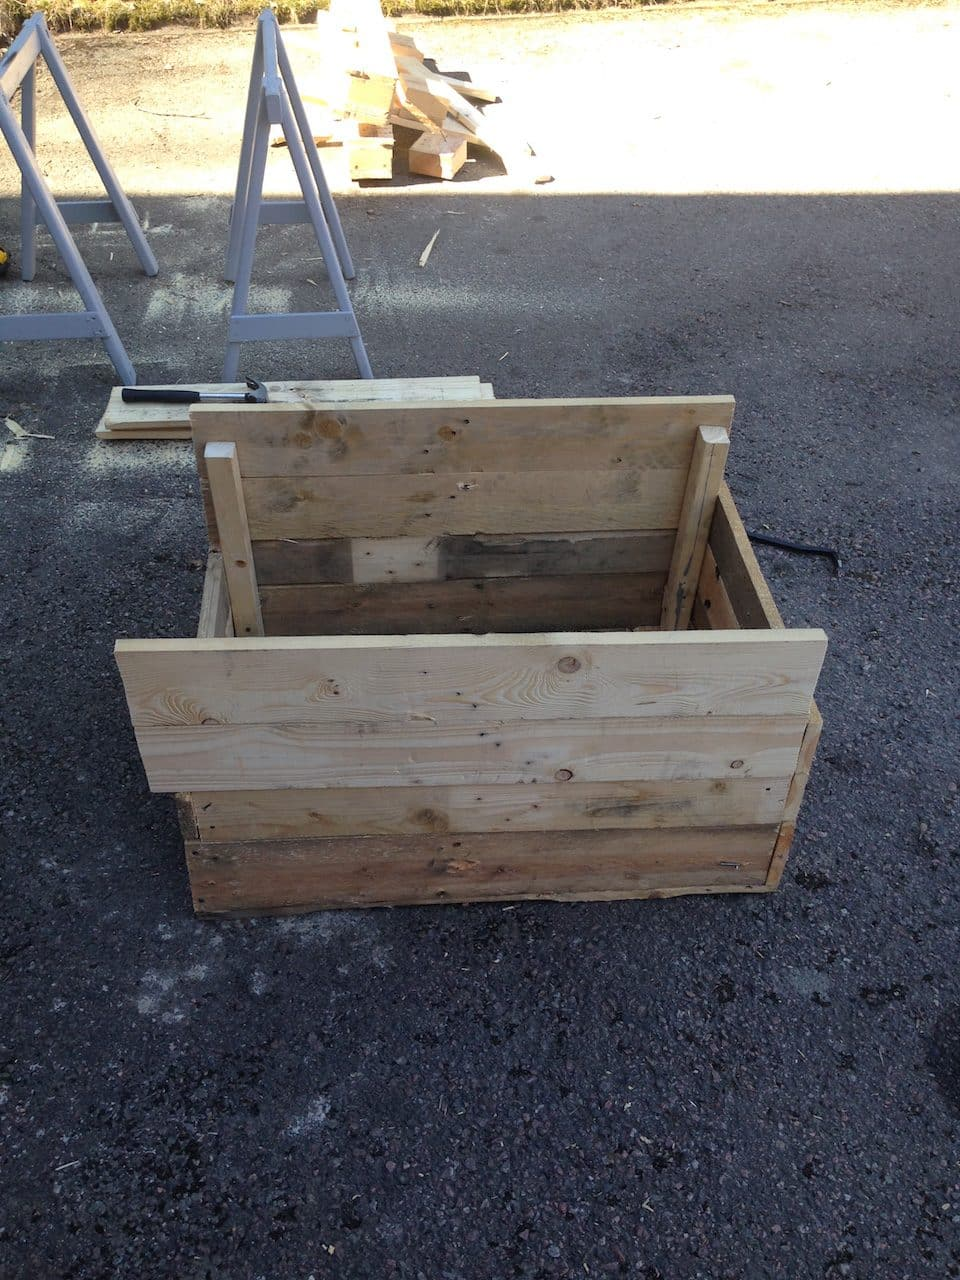 Diy pallet planter box easy to build recycle nick power keep building up the walls in the same fashion until you get to the height you want solutioingenieria Choice Image